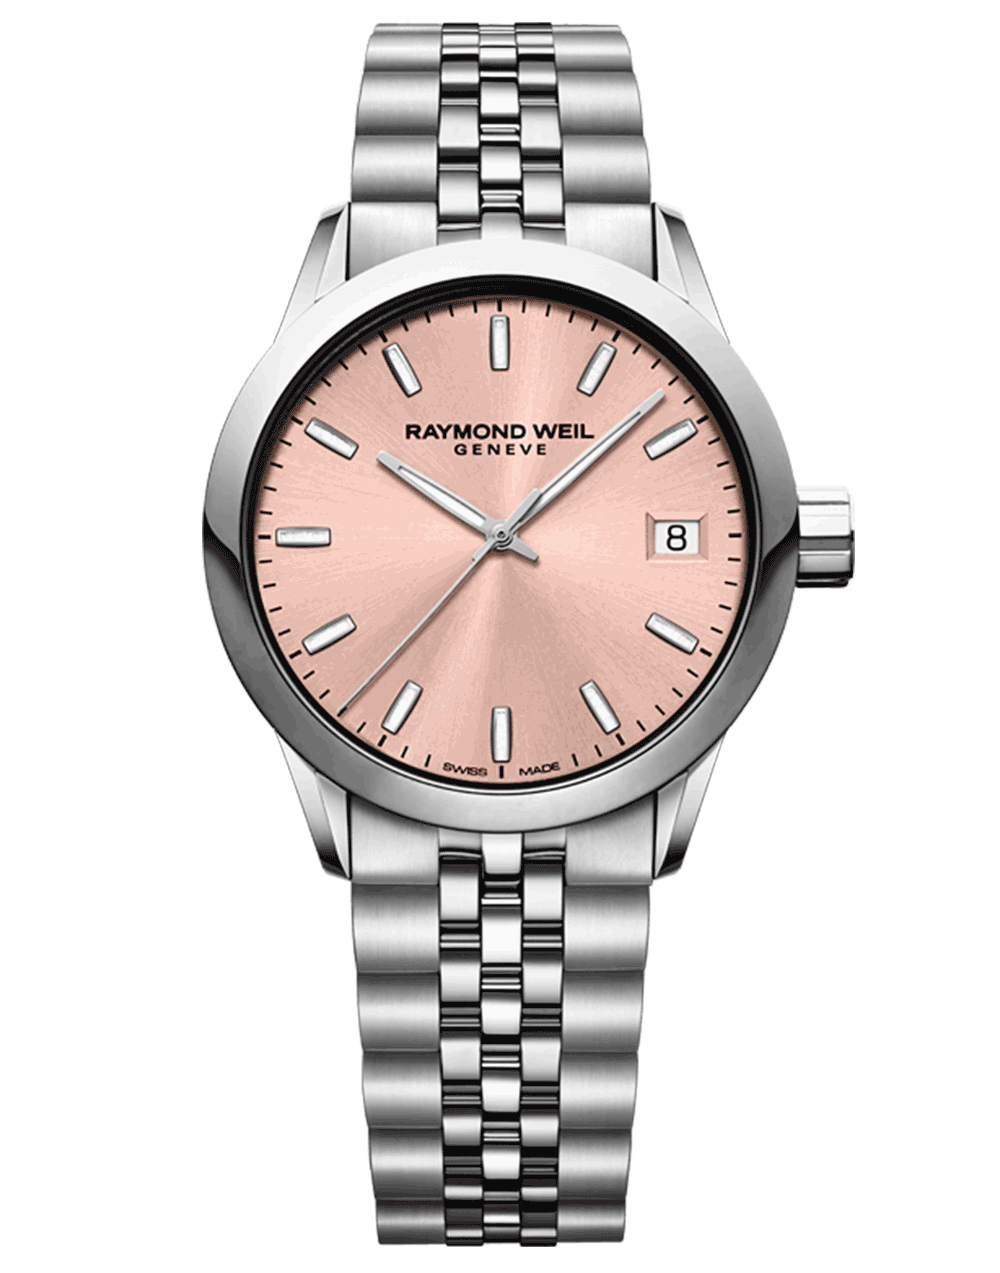 Freelancer Ladies Rose Tone Quartz Date Watch, 34mm 5634-ST-80021